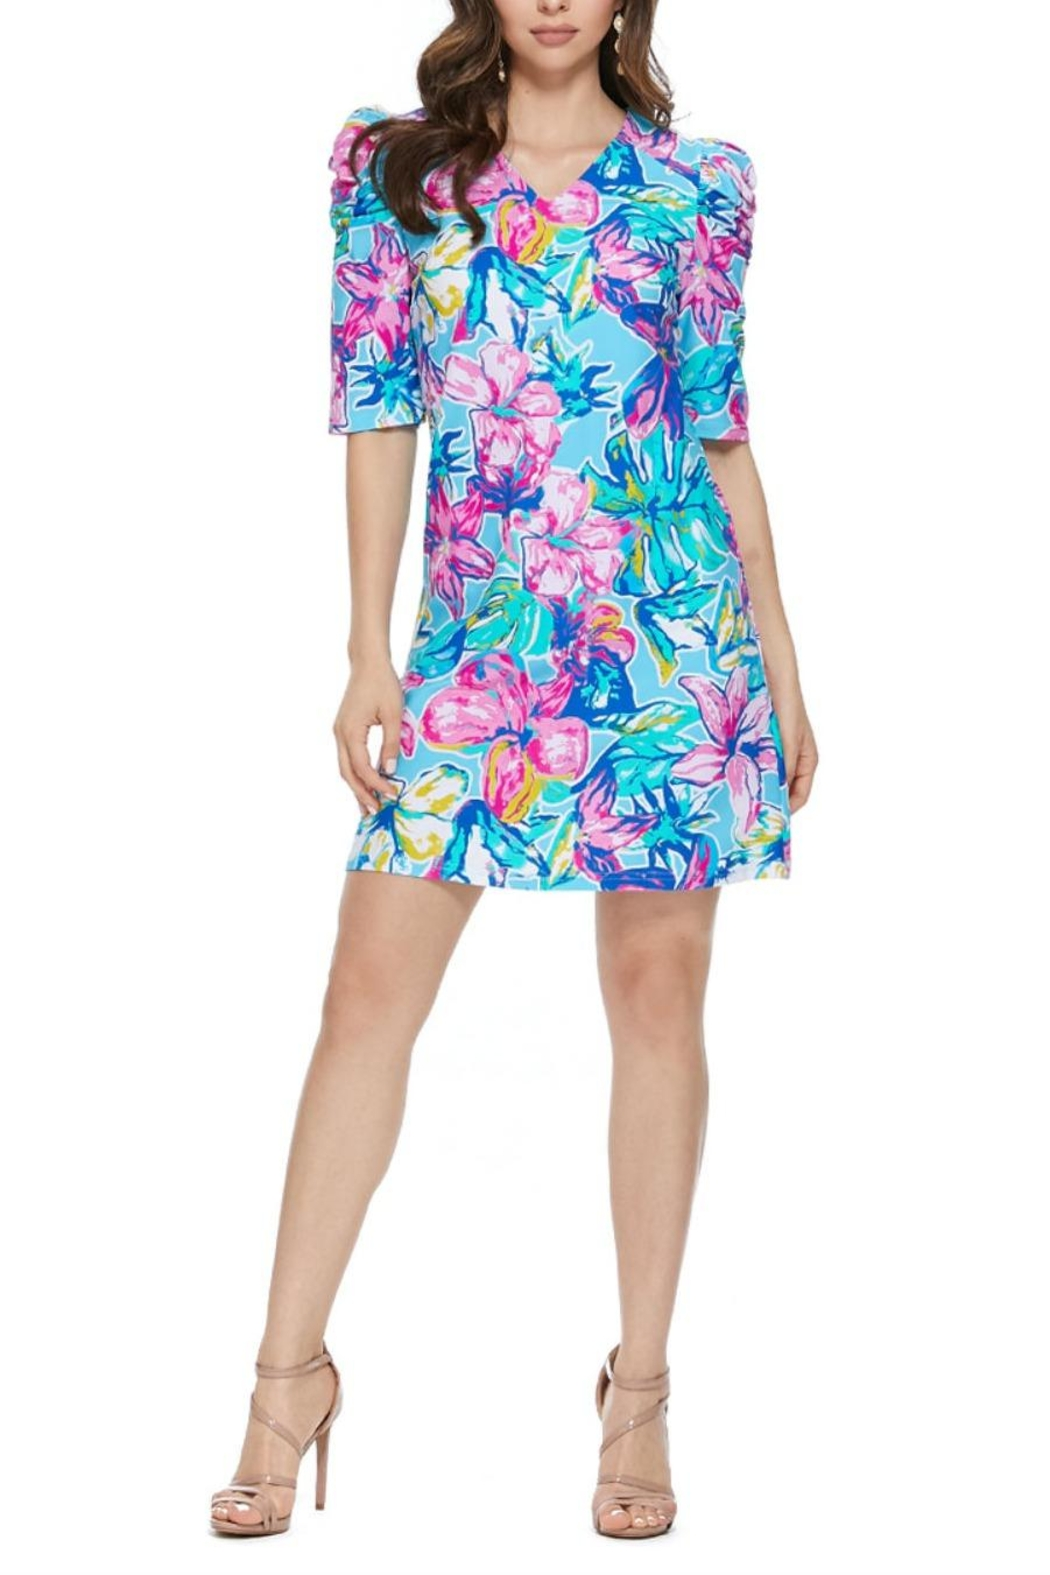 Aryeh Sky Puffy Shoulder Floral Dress - Main Image